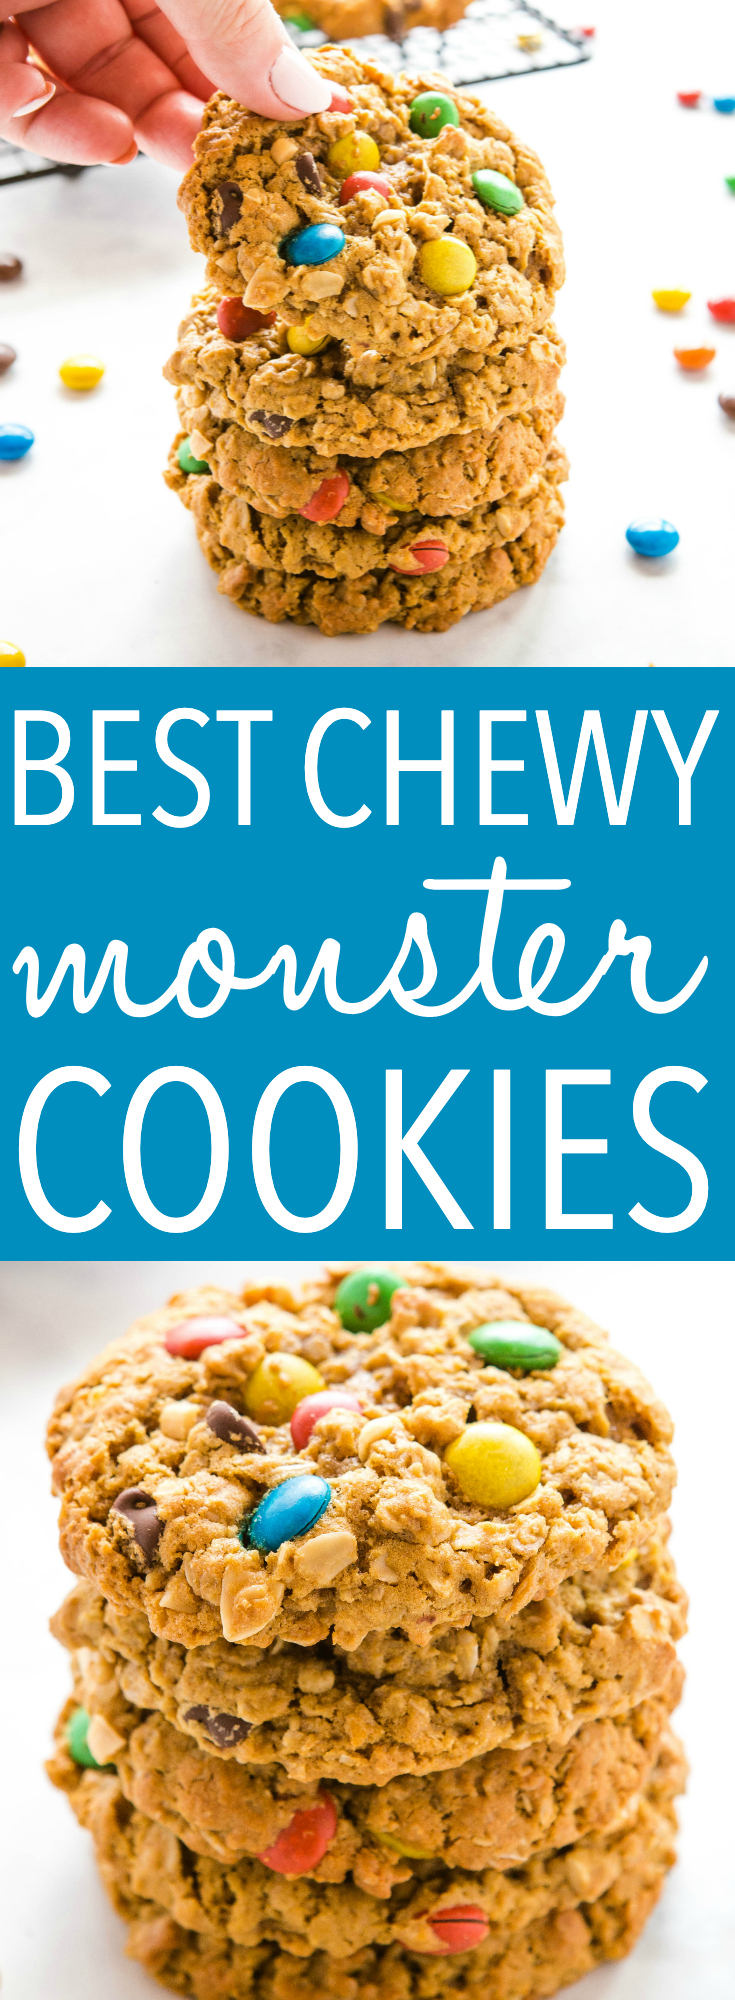 This is the perfect cookie recipe to make when you need a sweet treat! Monster Cookies are soft and chewy peanut butter oatmeal cookies studded with M&Ms. Recipe from thebusybaker.ca! #monstercookies #m&ms #candy #cookies #homemade #backtoschool #afterschoolsnack #snack #kidfriendly via @busybakerblog